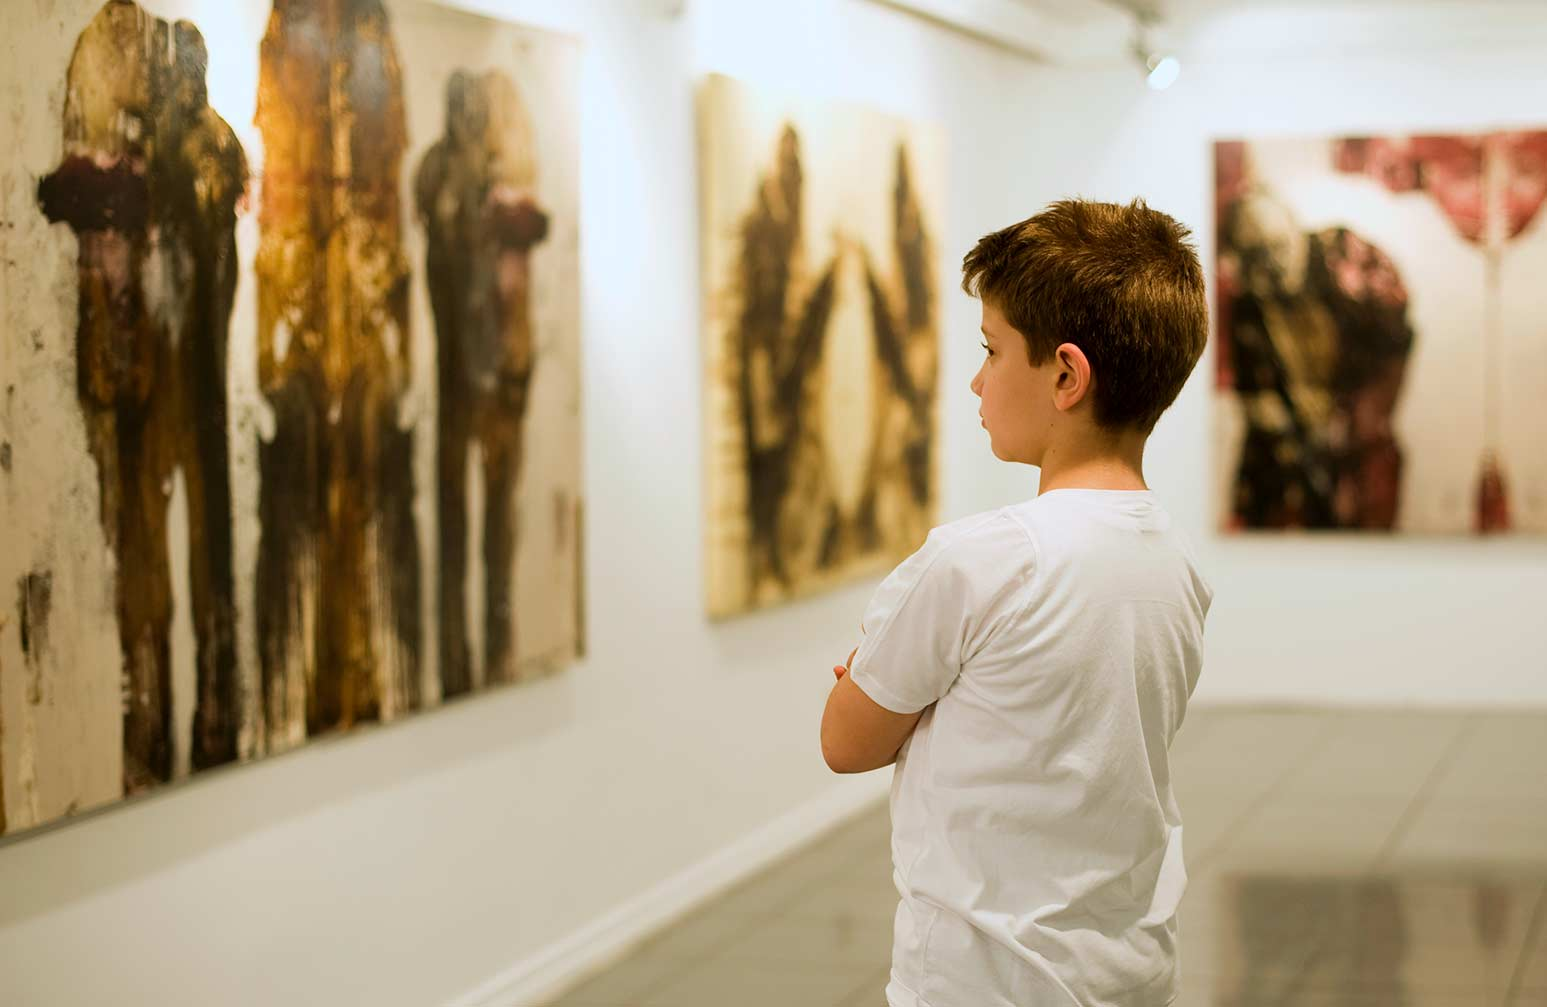 Child looking at art at a museum.